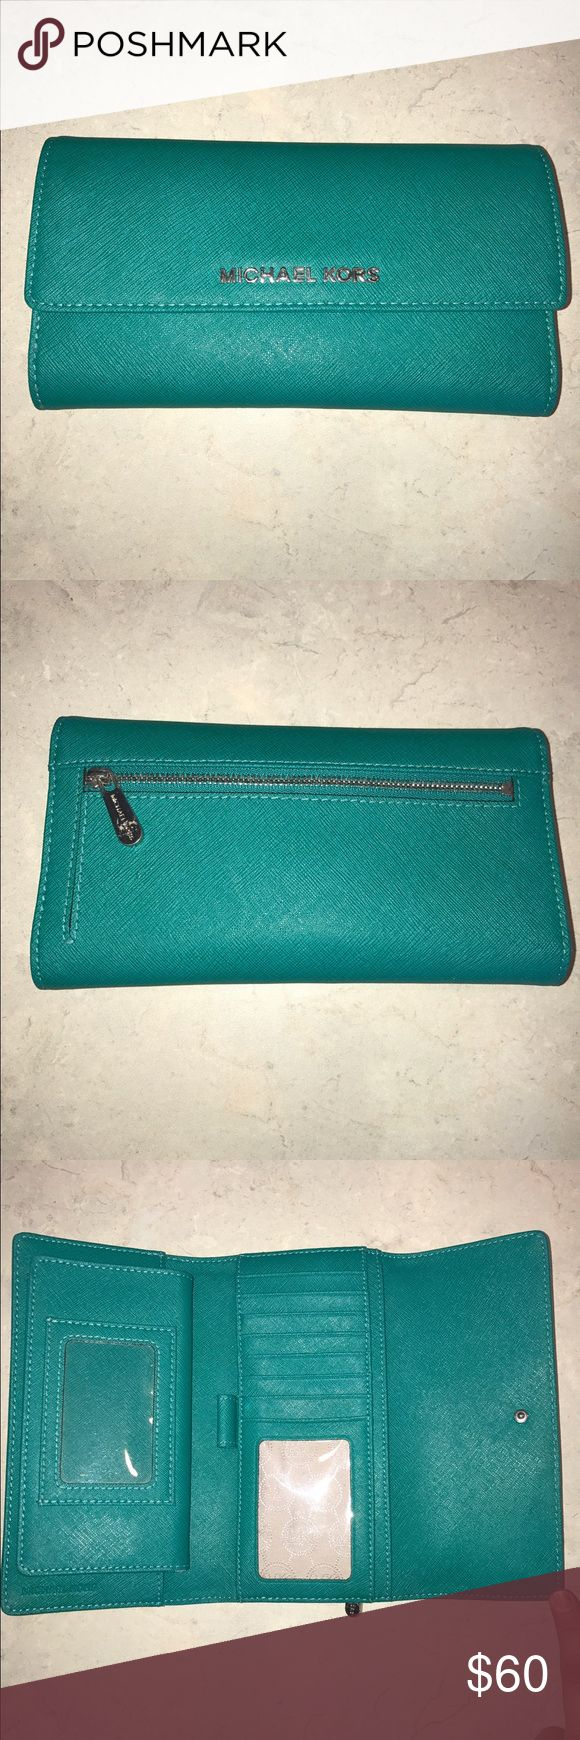 Michael Kors Jet Set Leather Checkbook Wallet Condition: like new; Large leather Michael Kors wallet with removable checkbook flap. Color: turquoise Michael Kors Bags Wallets